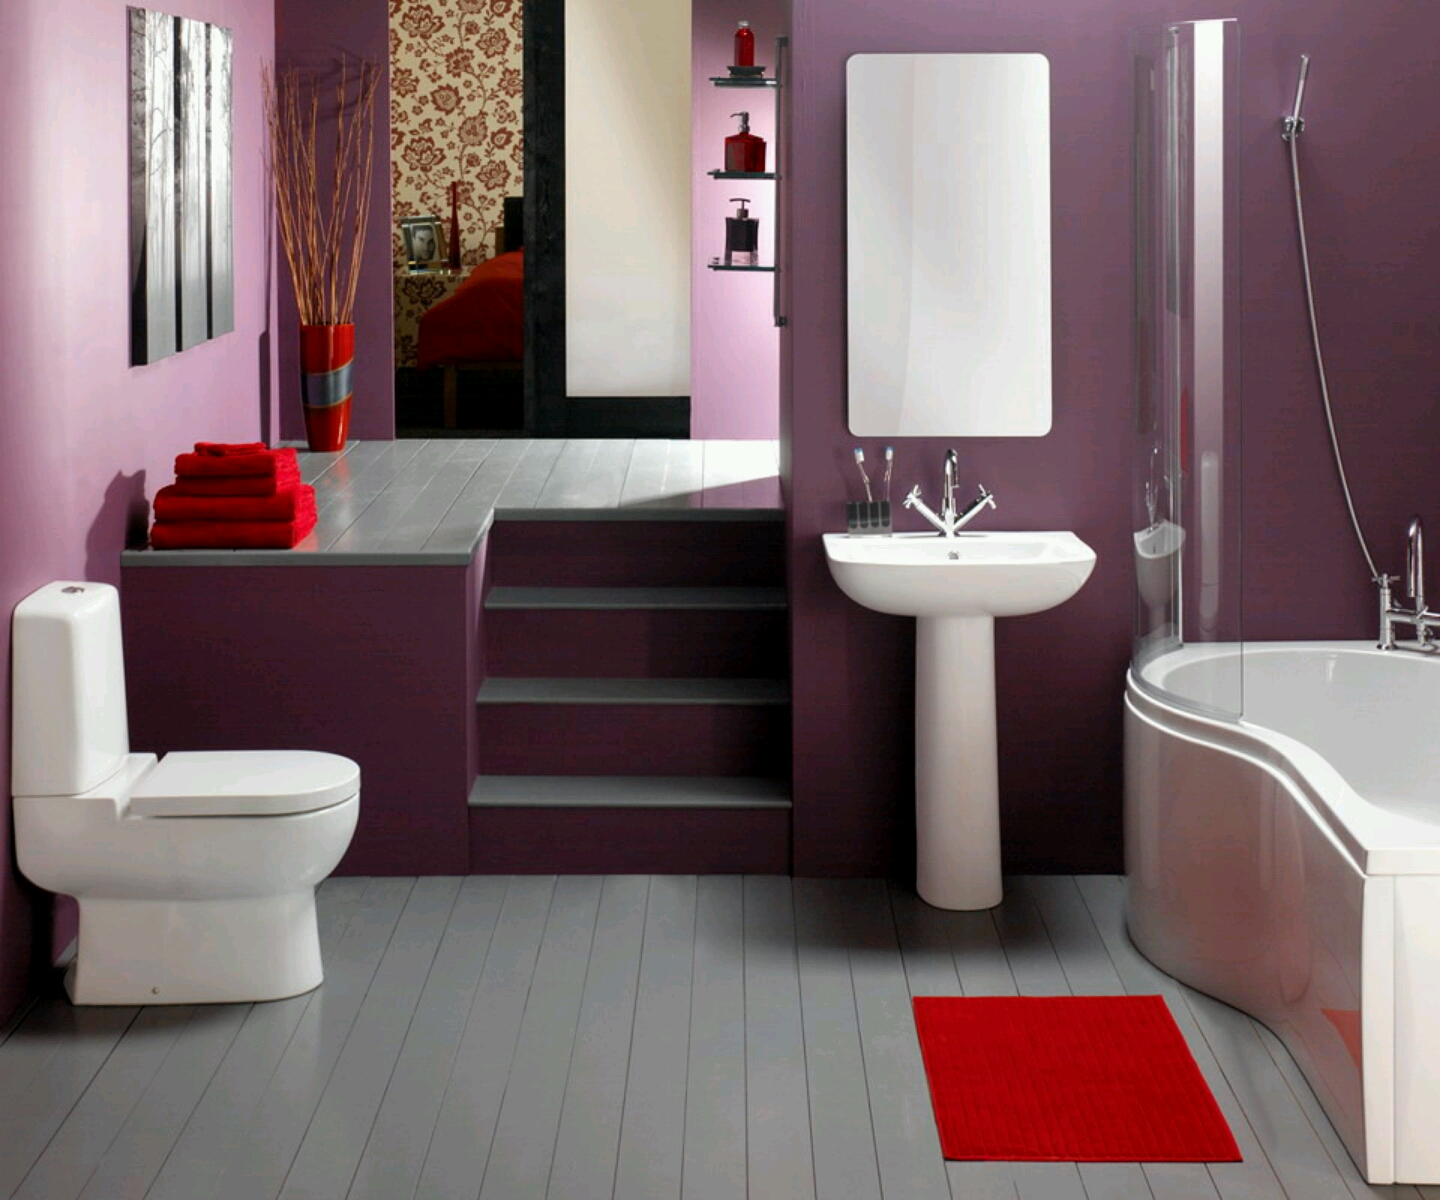 New home designs latest luxury modern bathrooms designs for Toilet interior ideas